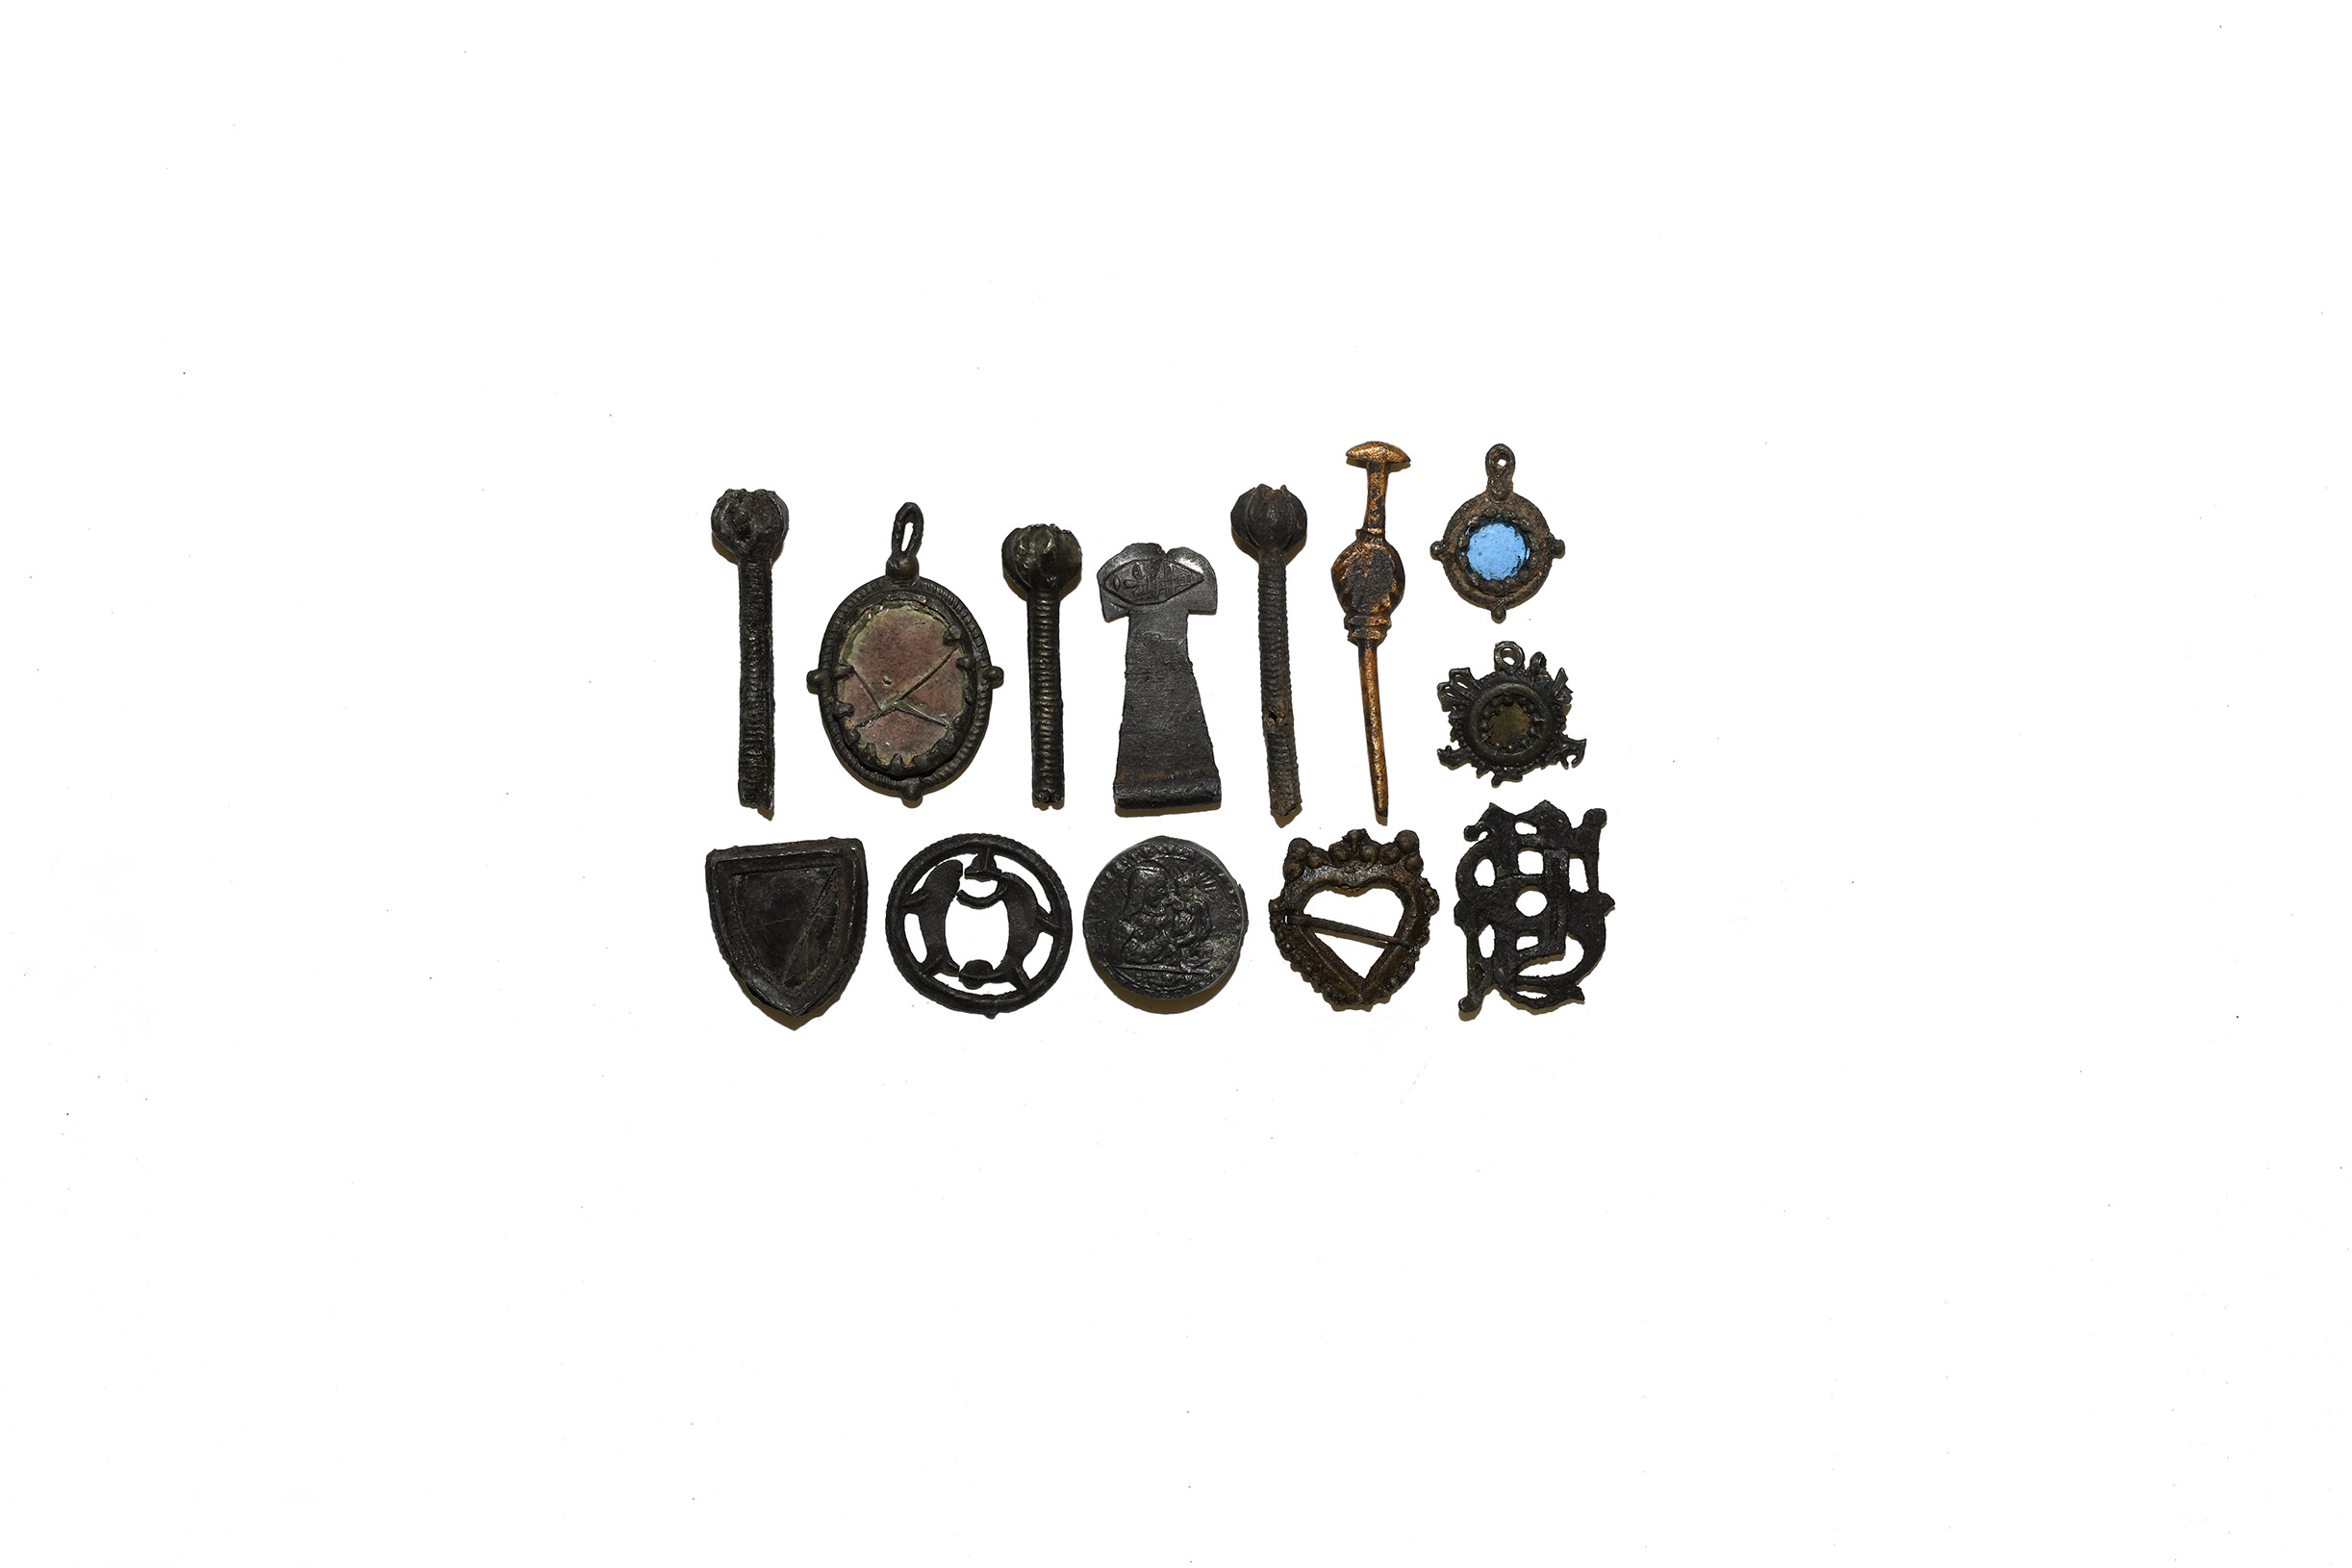 Medieval Pilgrims Badge and Other Artefact Collection